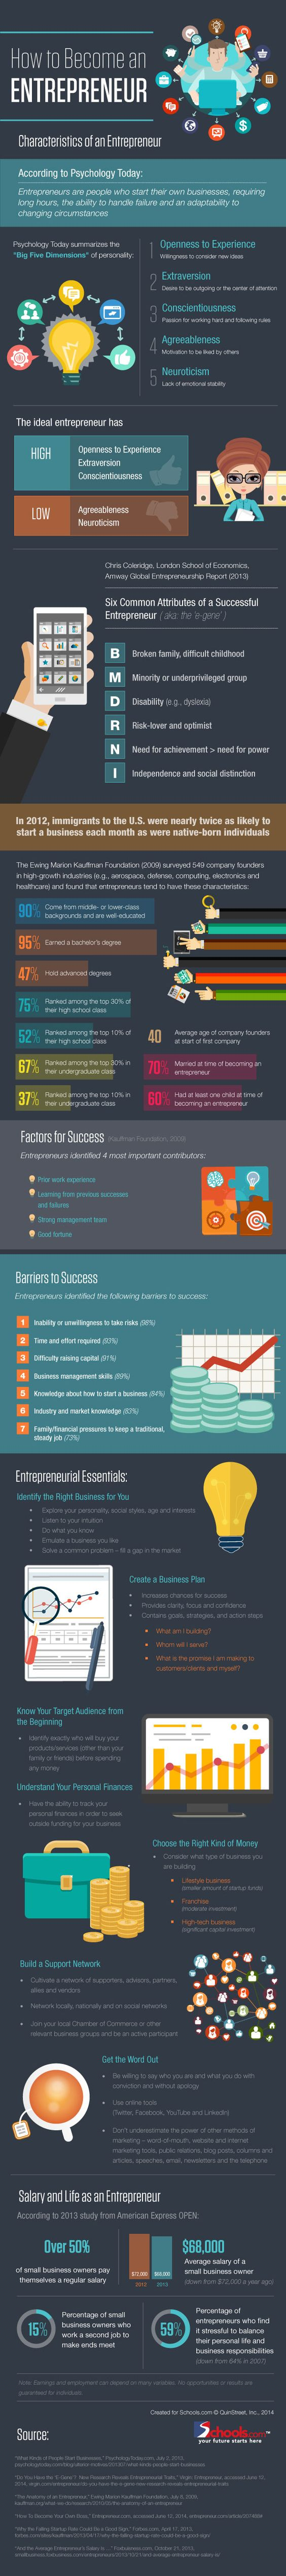 What Great Entrepreneurs Have in Common (Infographic) | Inc.com: